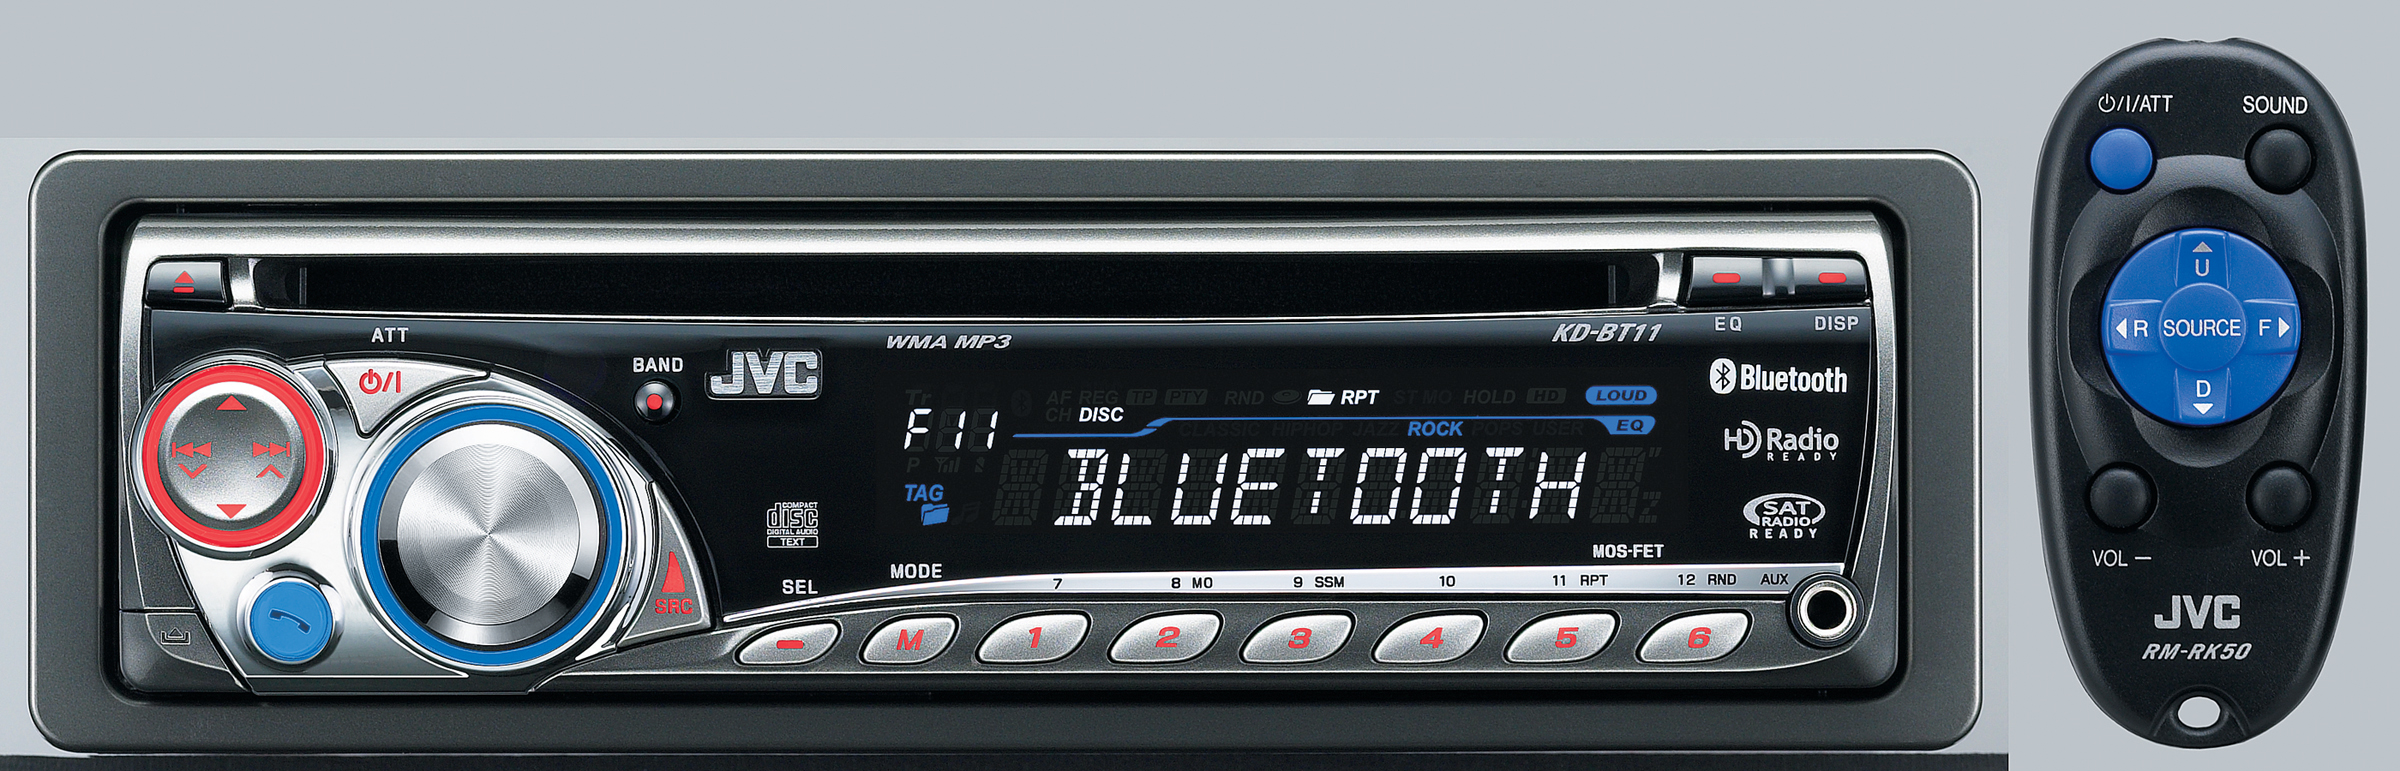 Jvc Kd Lh300 Wiring Harness Diagram Not Lossing R330 Moreover Pioneer Car Stereo S29 S79bt Manual Radio